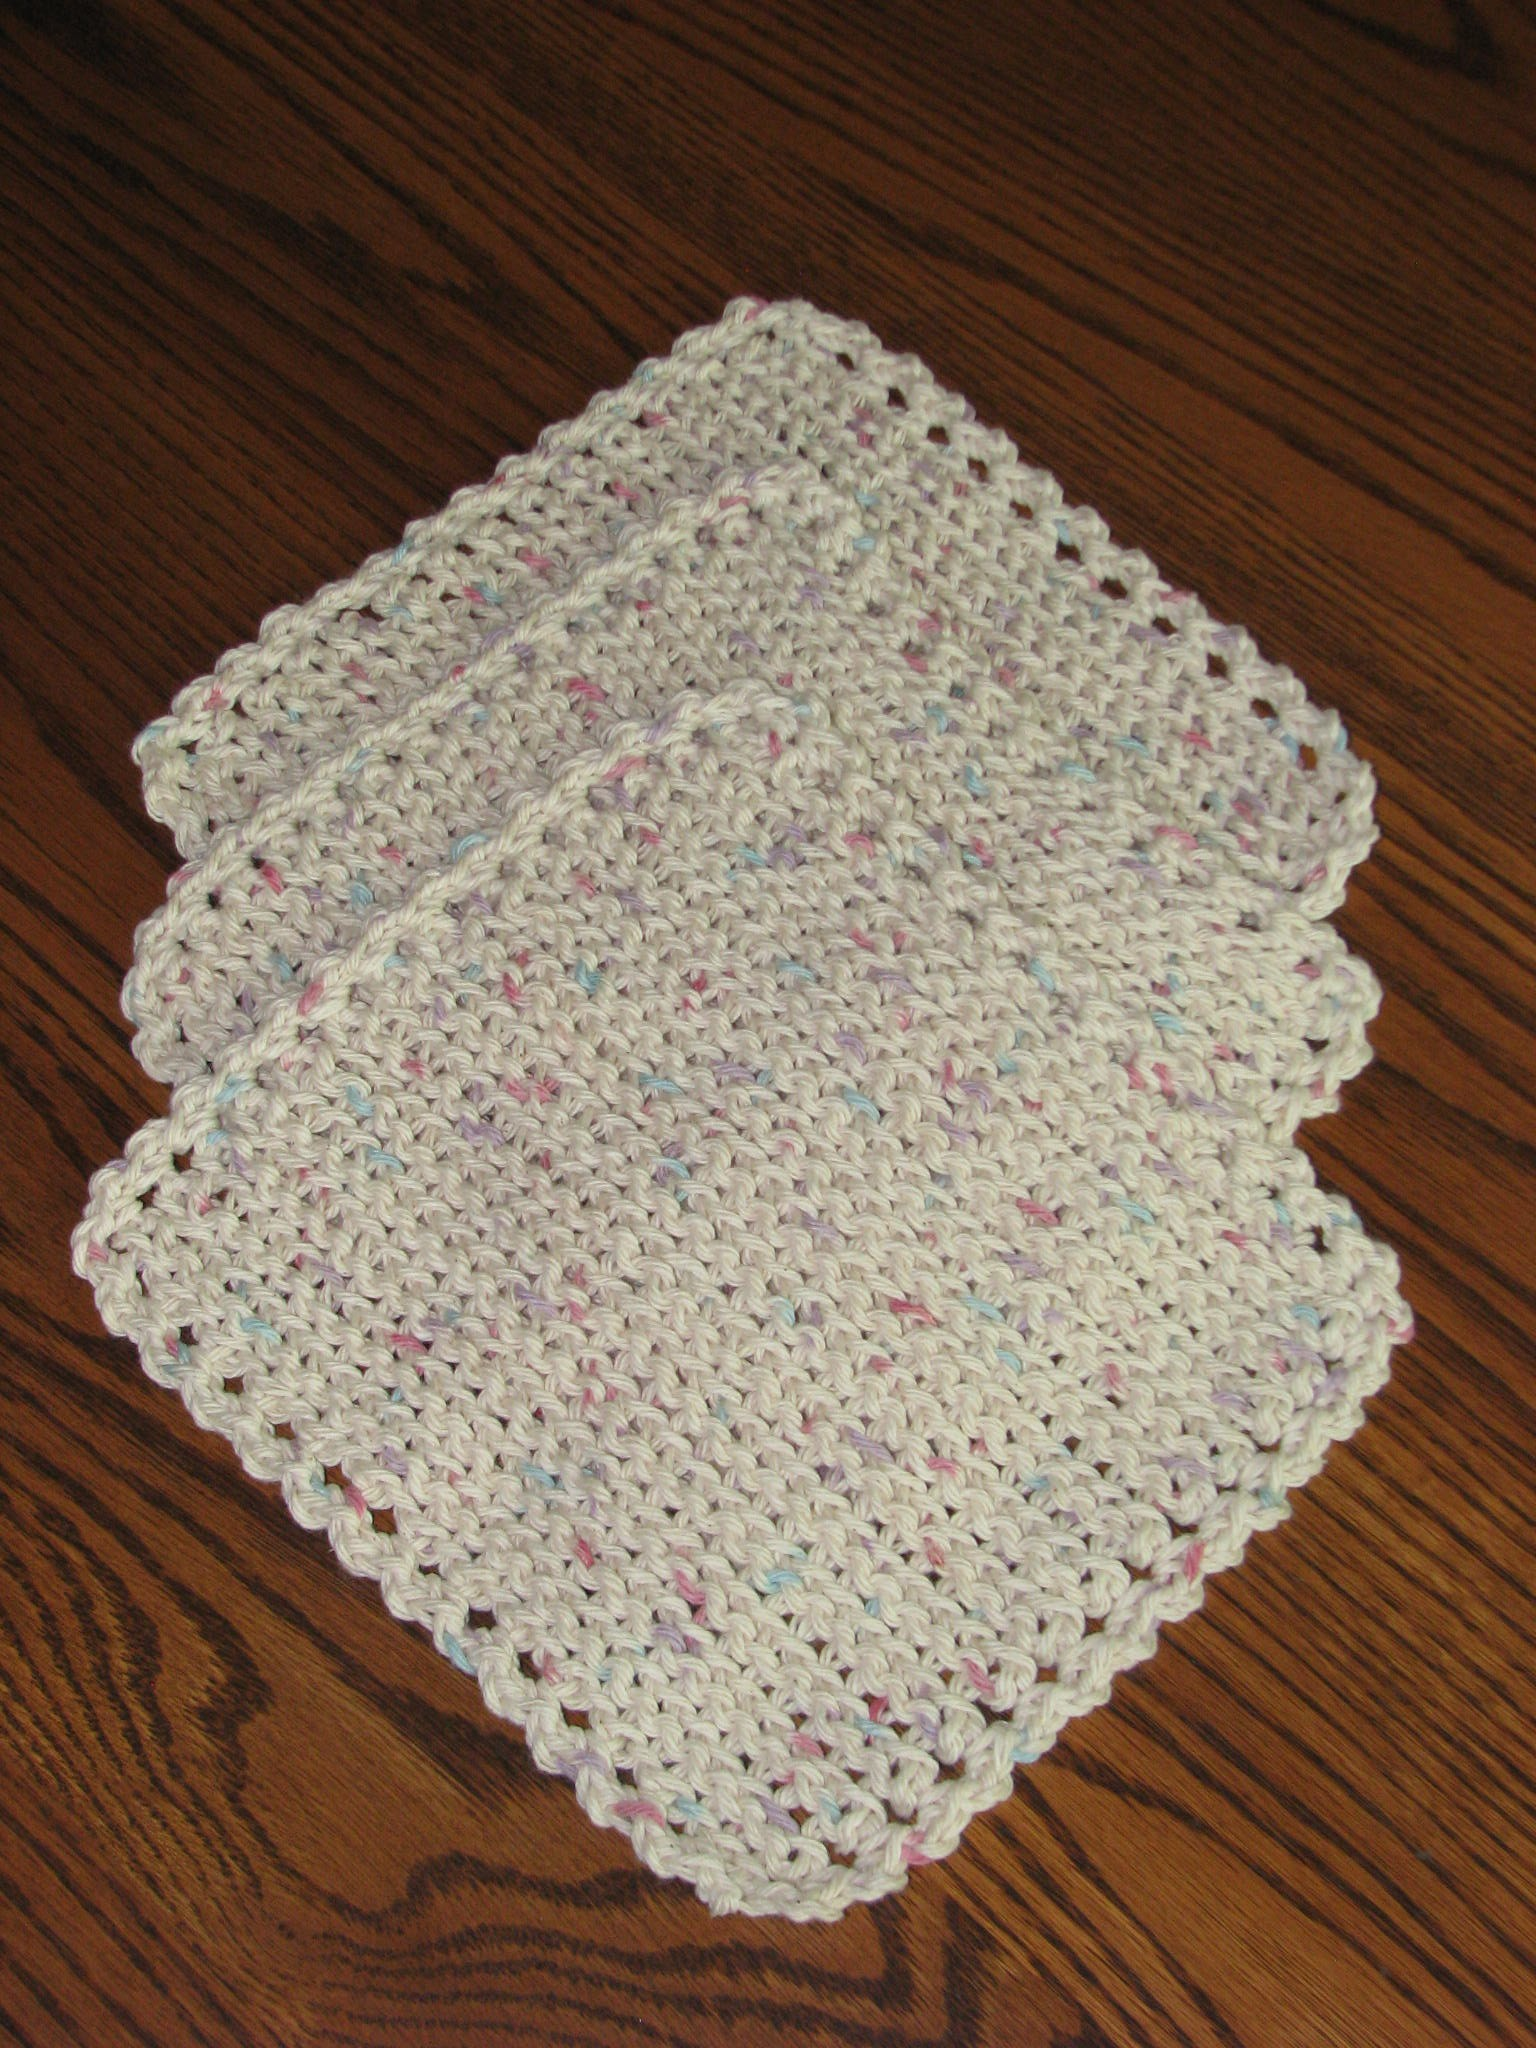 Crocheted Dishcloths (Set of 3) - Cream with Flecks